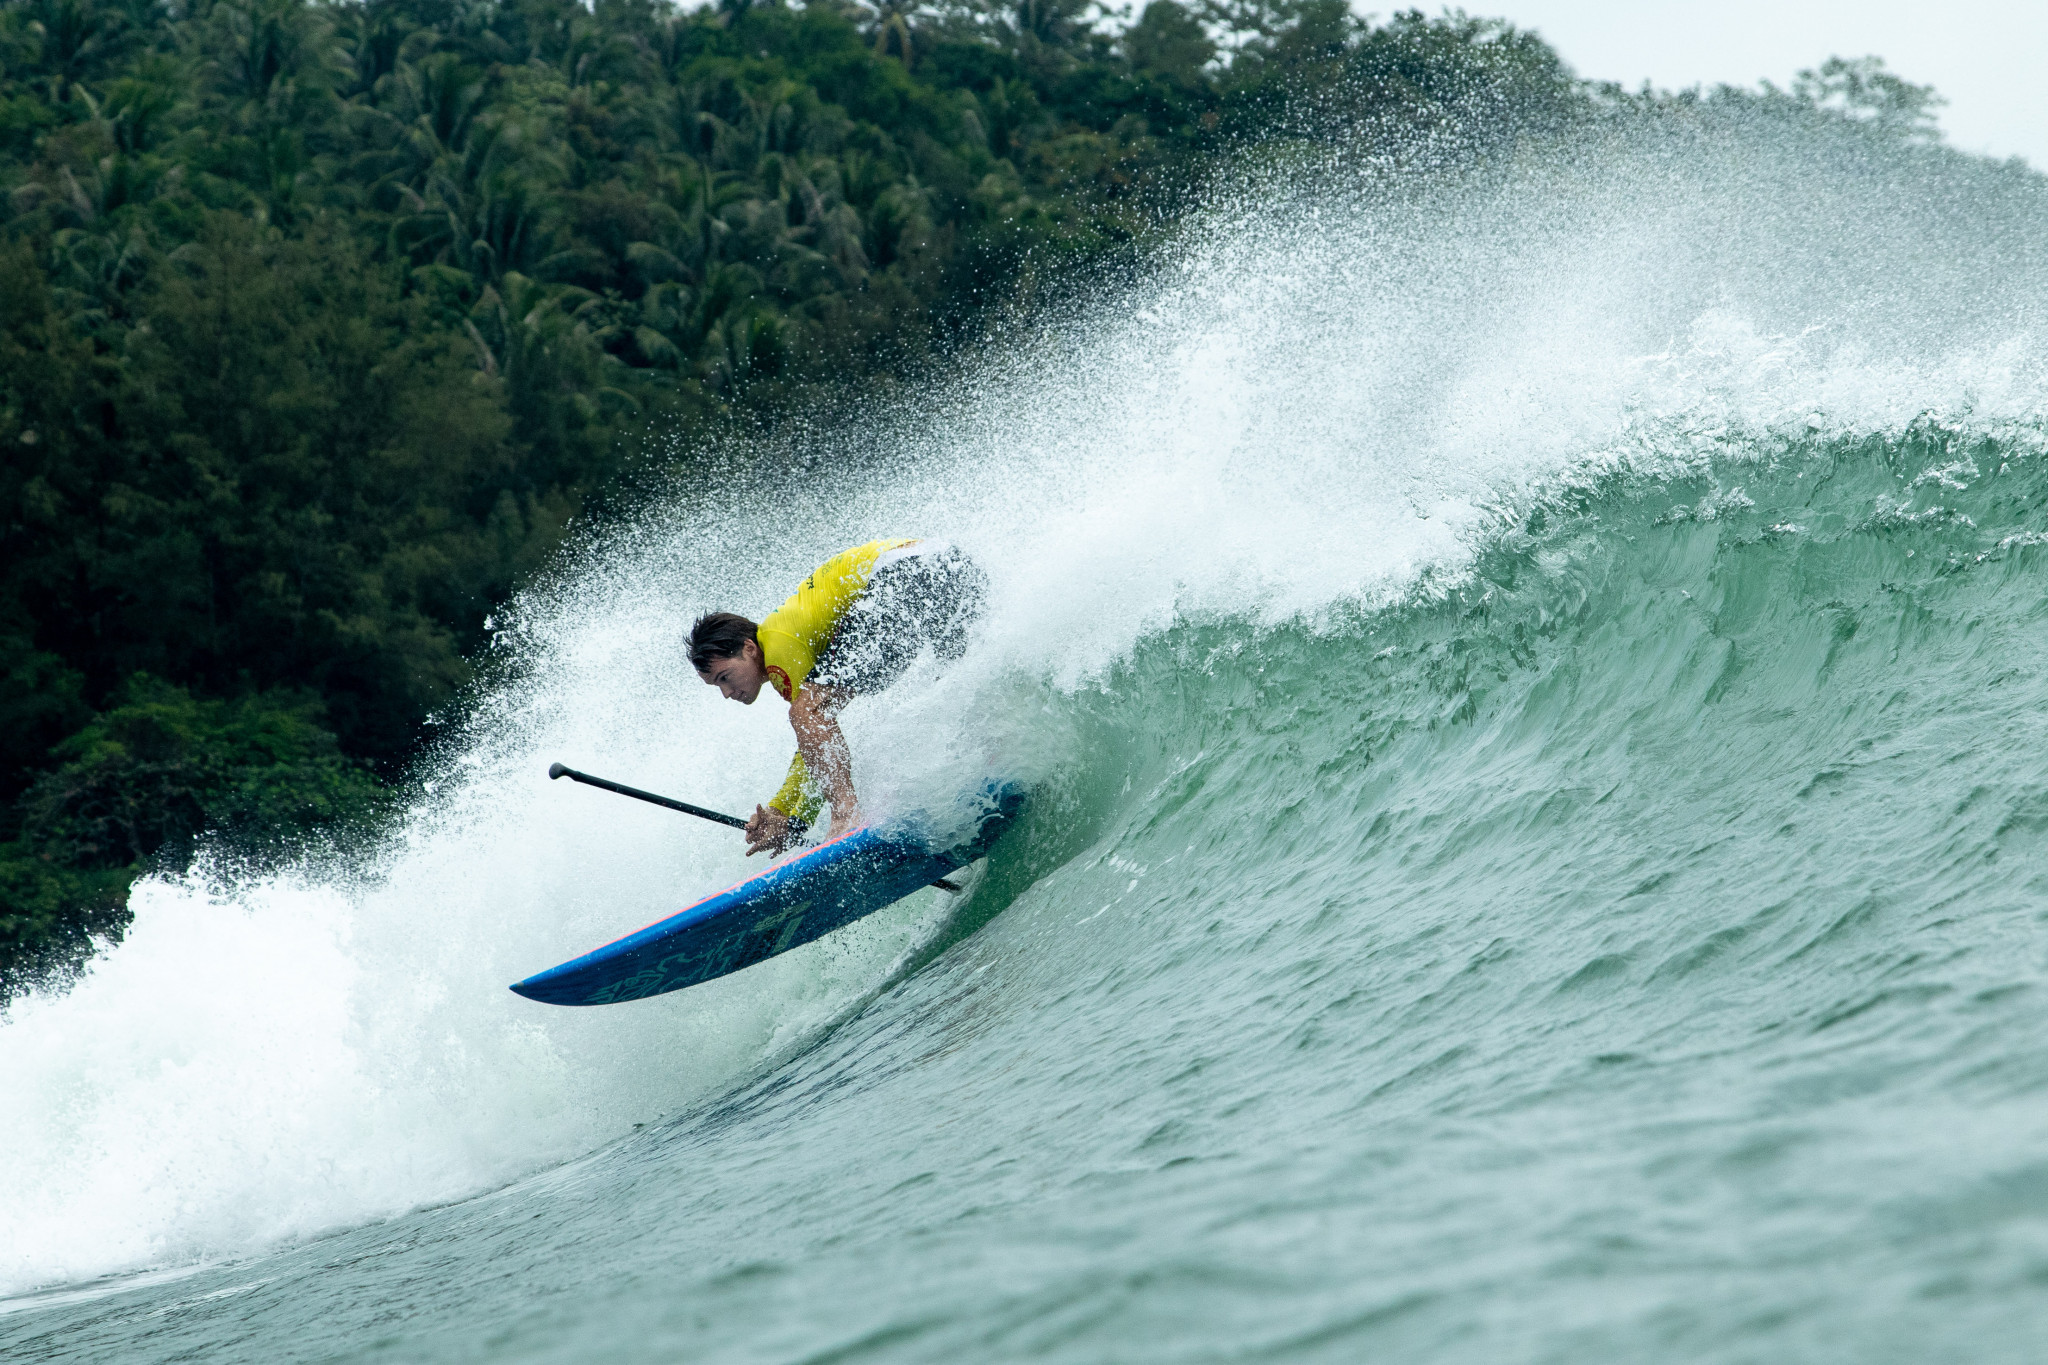 Former SUP surfing world champions qualify for men's main event final in China